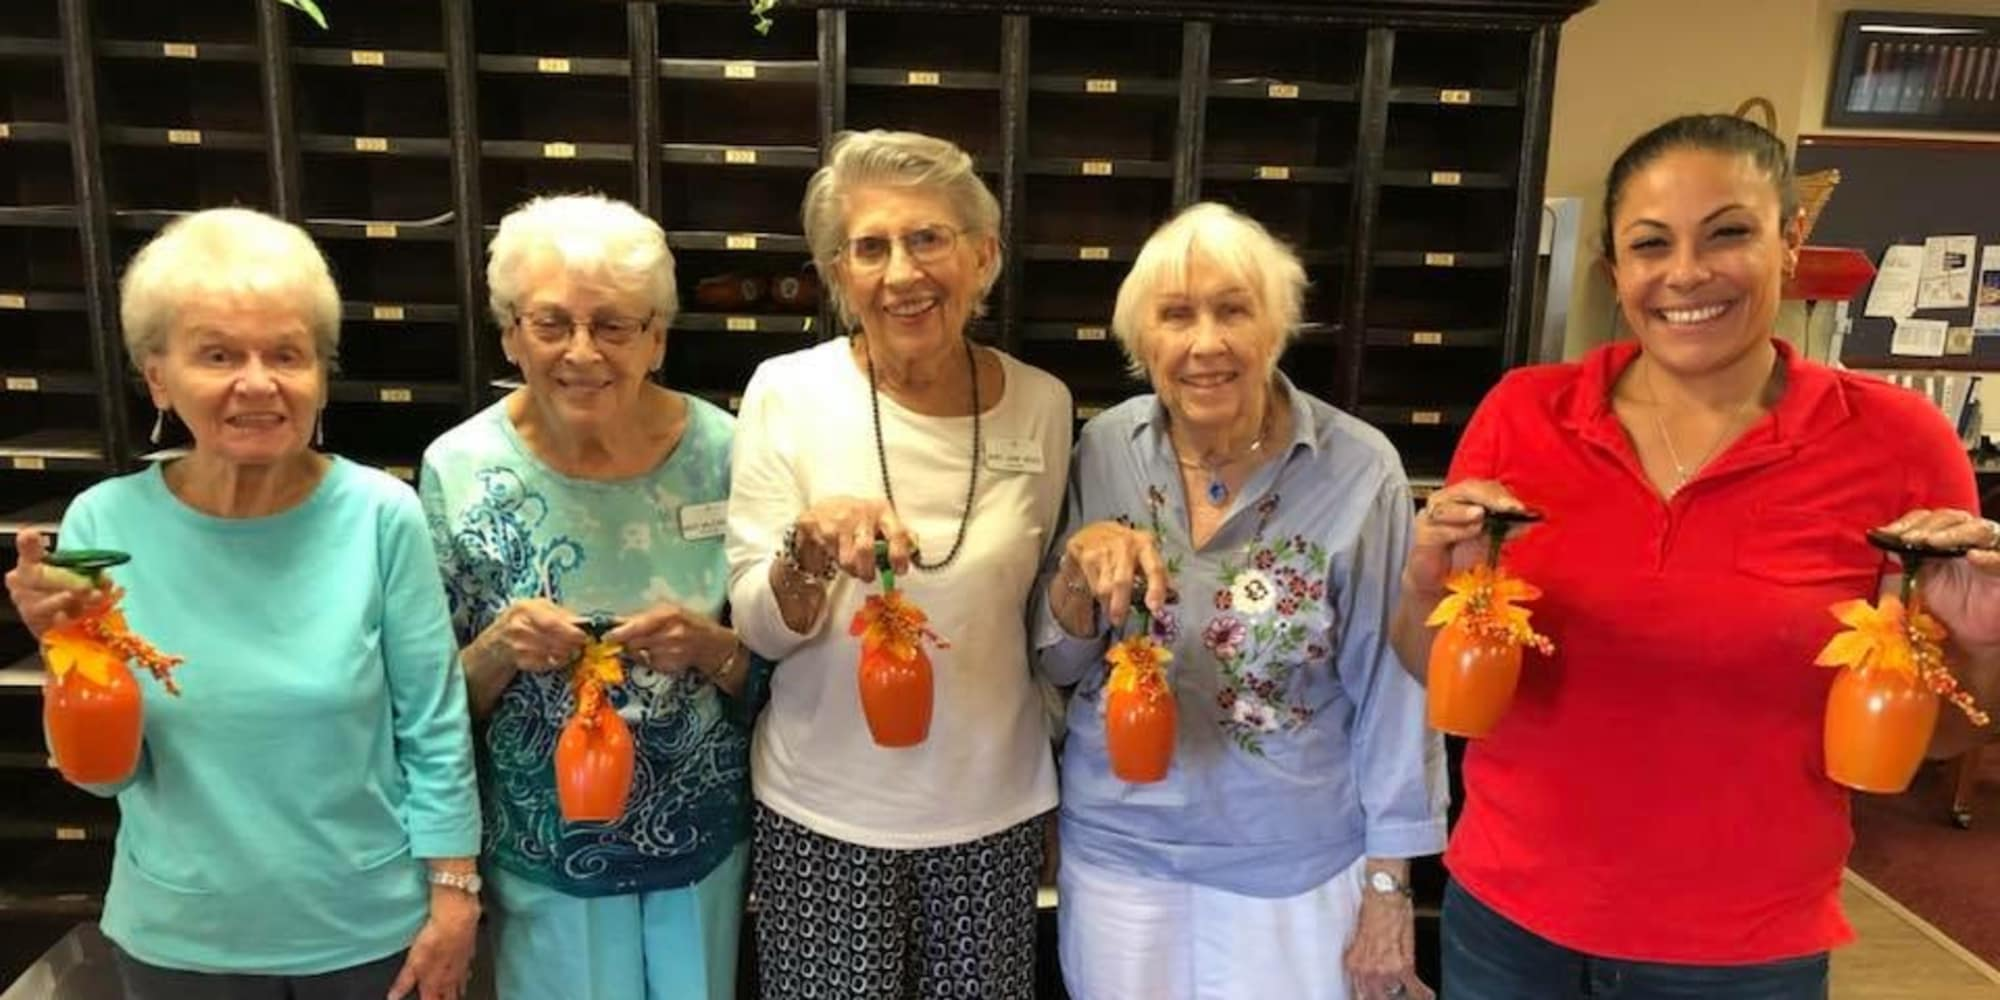 Residents and staff holding decorated cups at Paloma Landing Retirement Community in Albuquerque, New Mexico